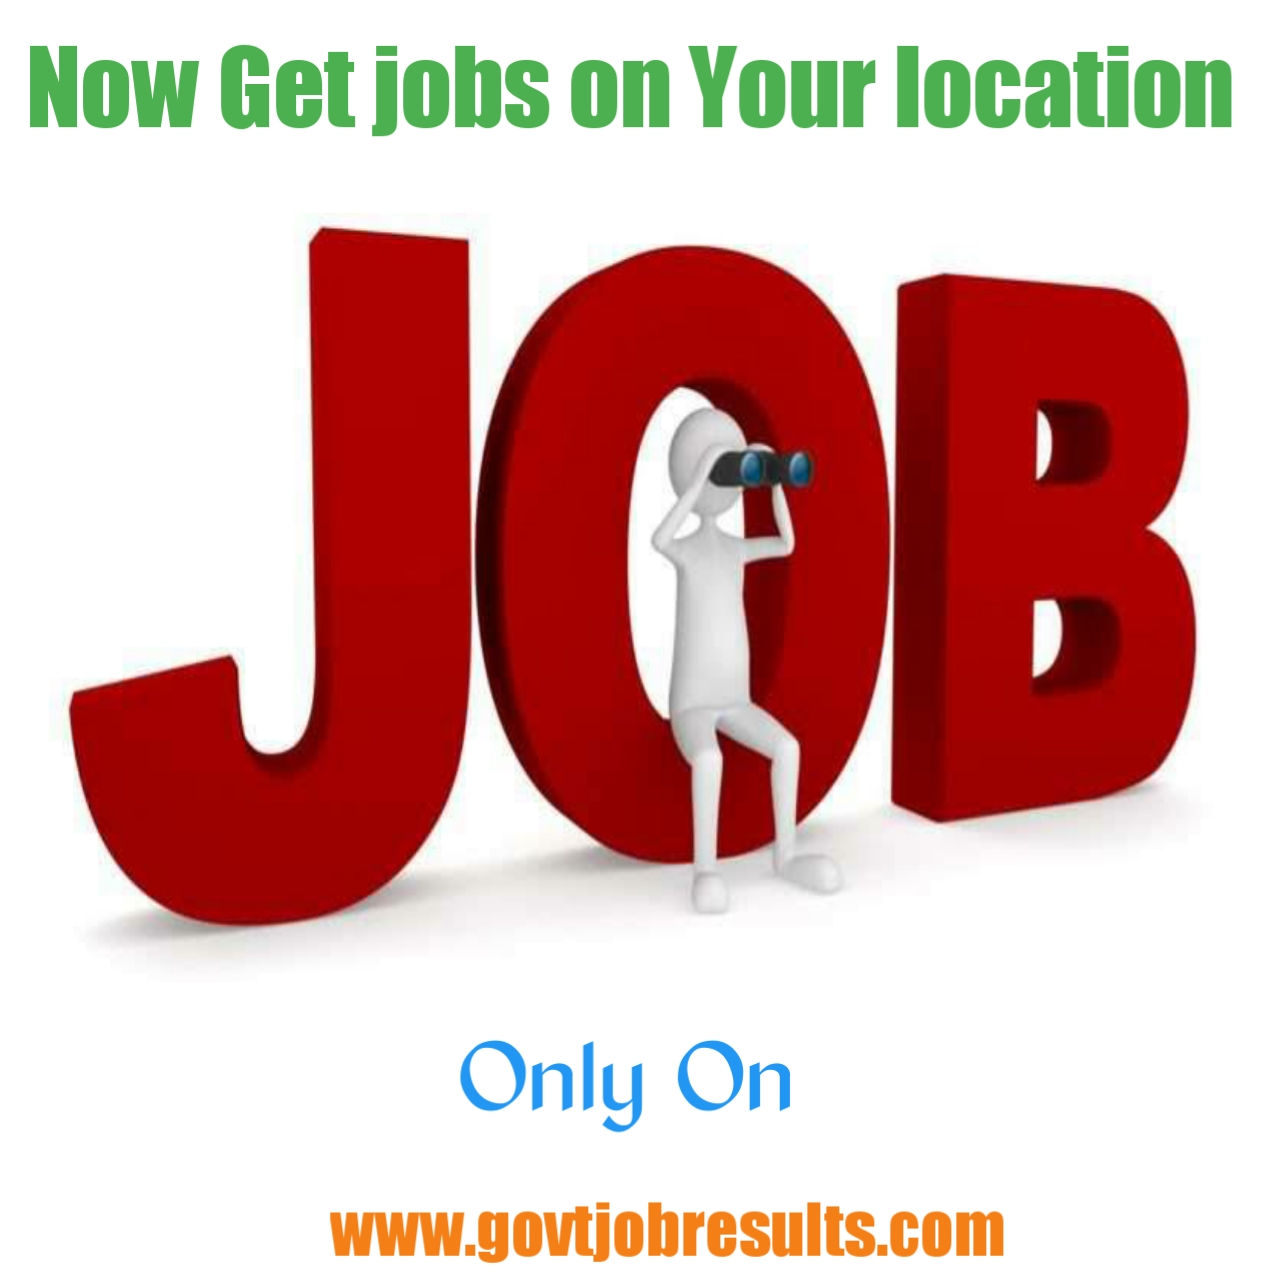 Jobs by Location